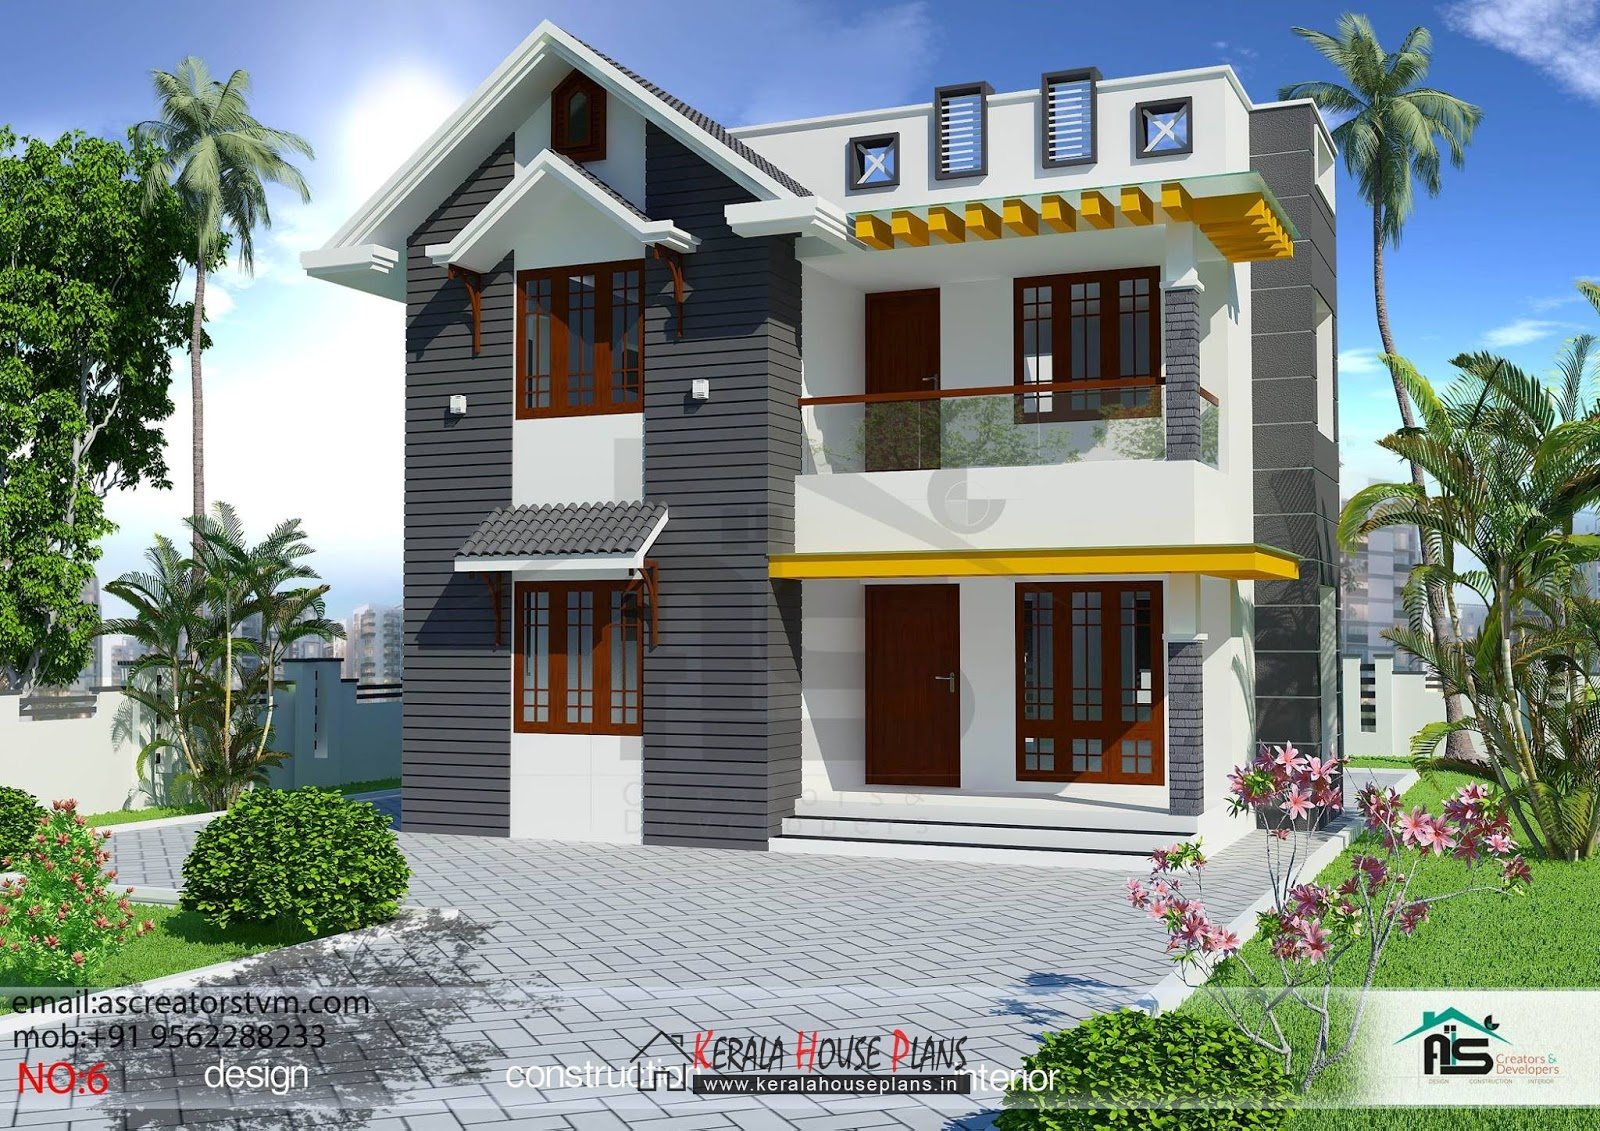 3 bedroom house plans in kerala double floor kerala for Three bedroom house plans kerala style